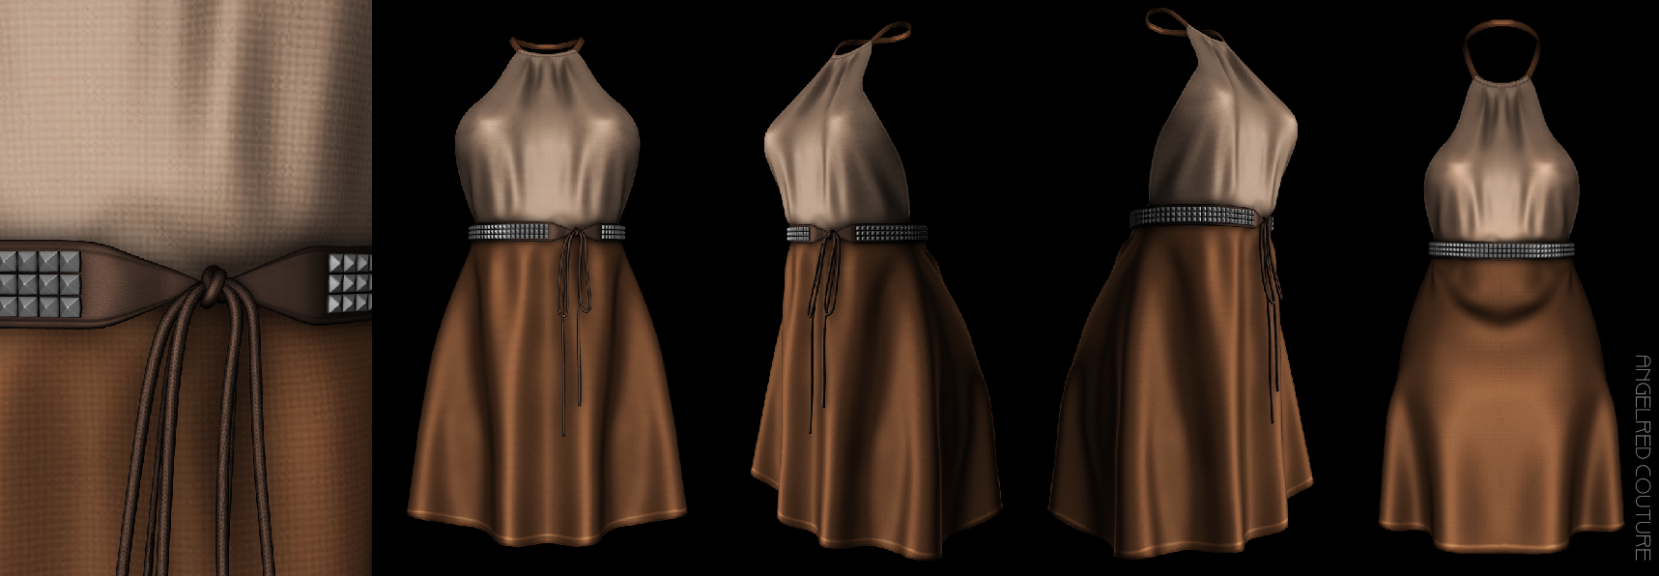 avenuedress 360 texture preview angelred couture